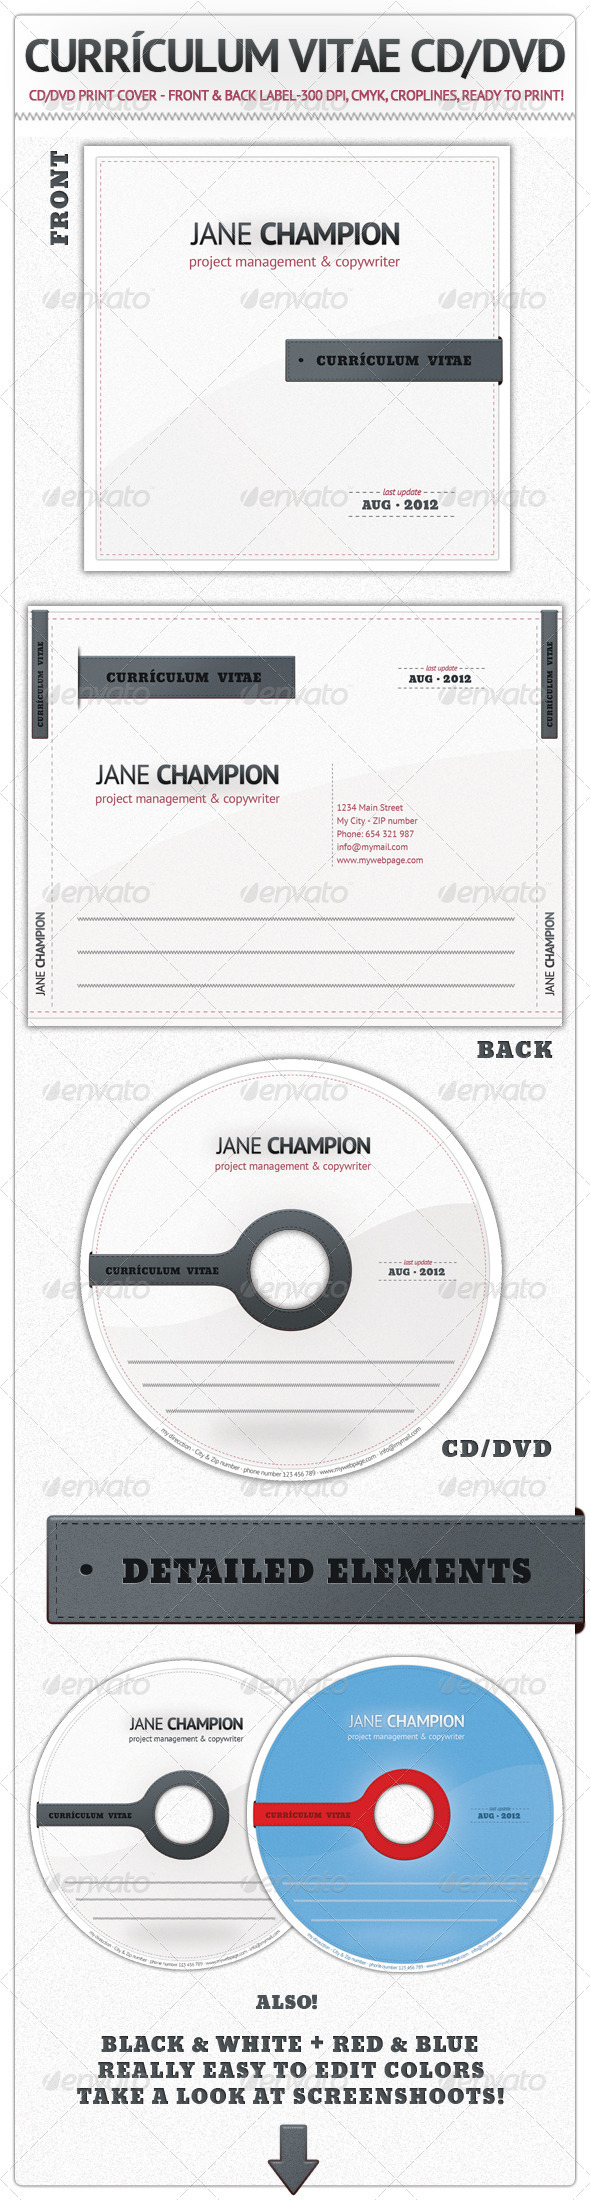 Curriculum Vitae CD / DVD - CD & DVD artwork Print Templates